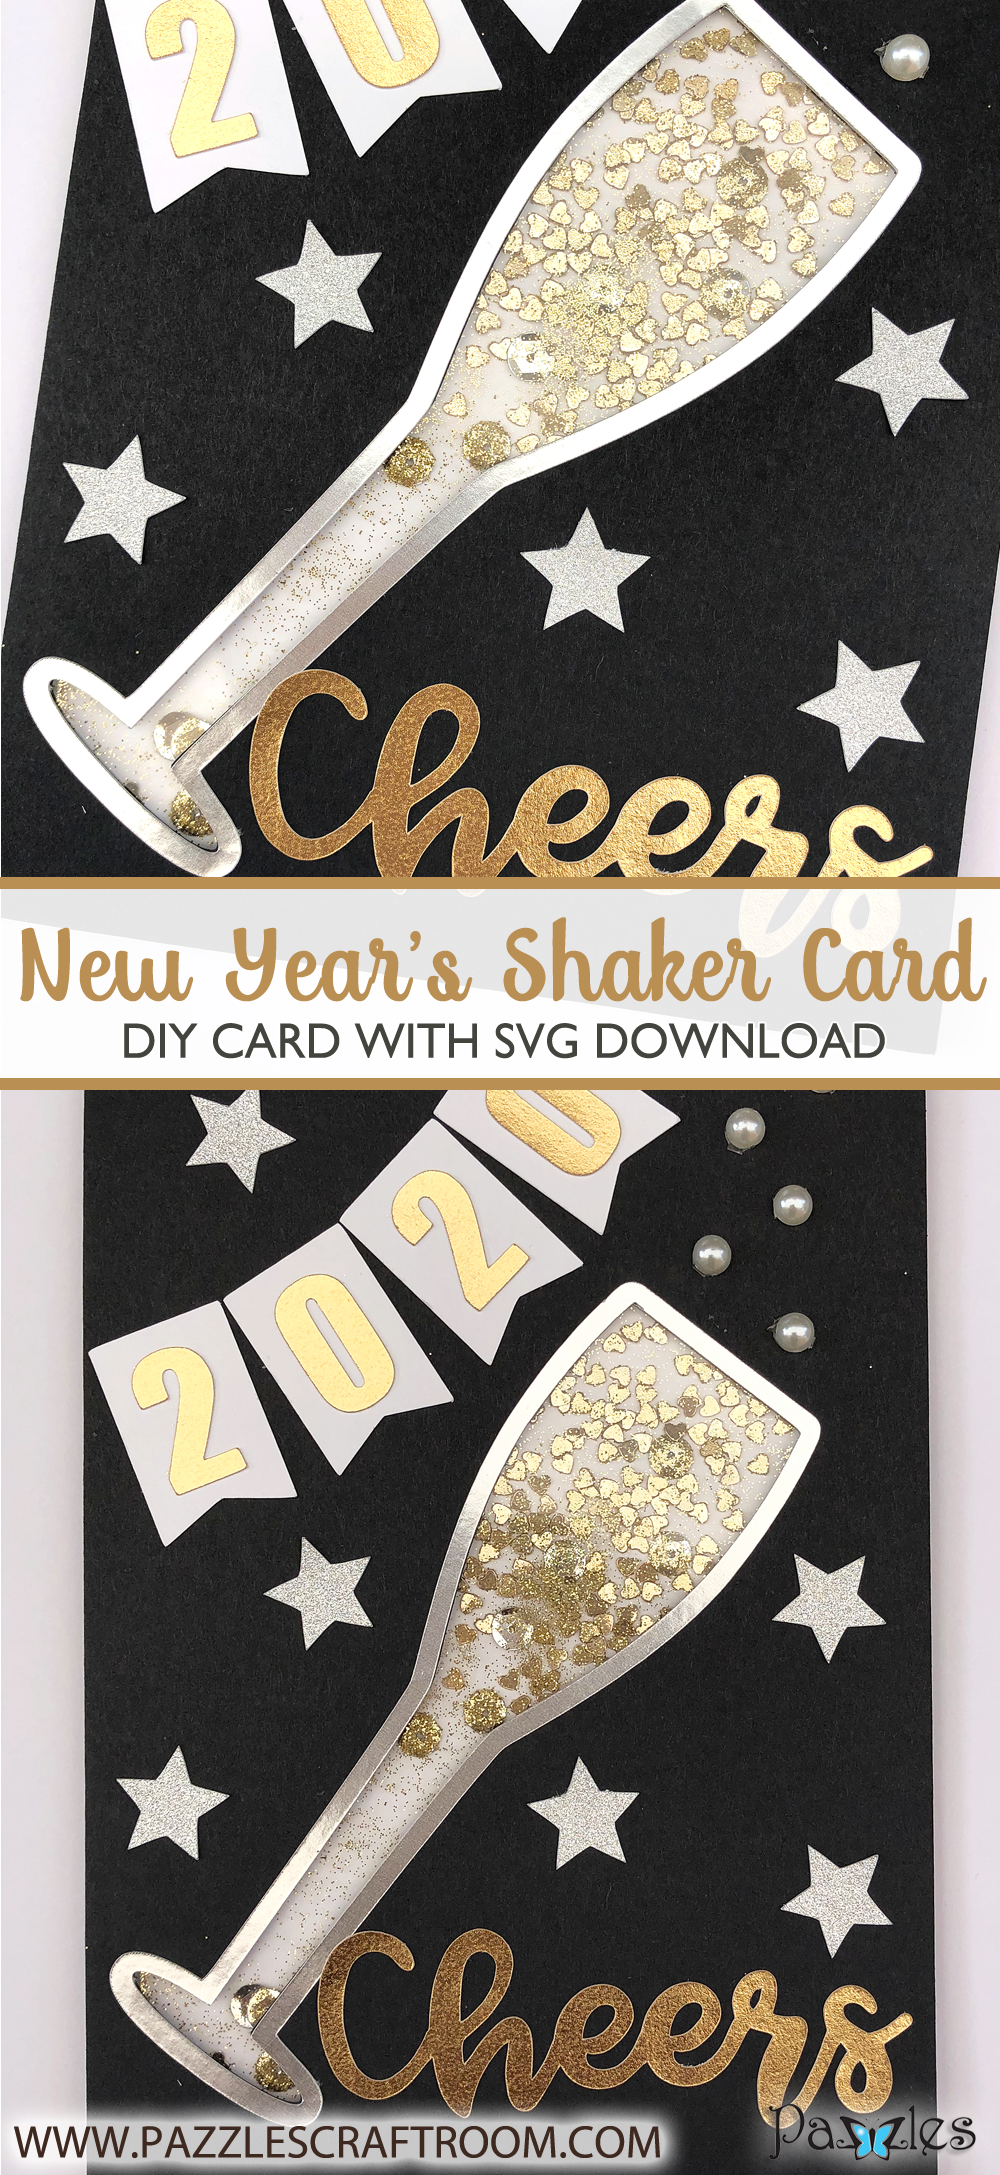 Pazzles DIY New Year's Shaker Card with instant SVG download. Compatible with all major electronic cutters including Pazzles Inspiration, Cricut, and Silhouette Cameo. Design by Alma Cervantes.